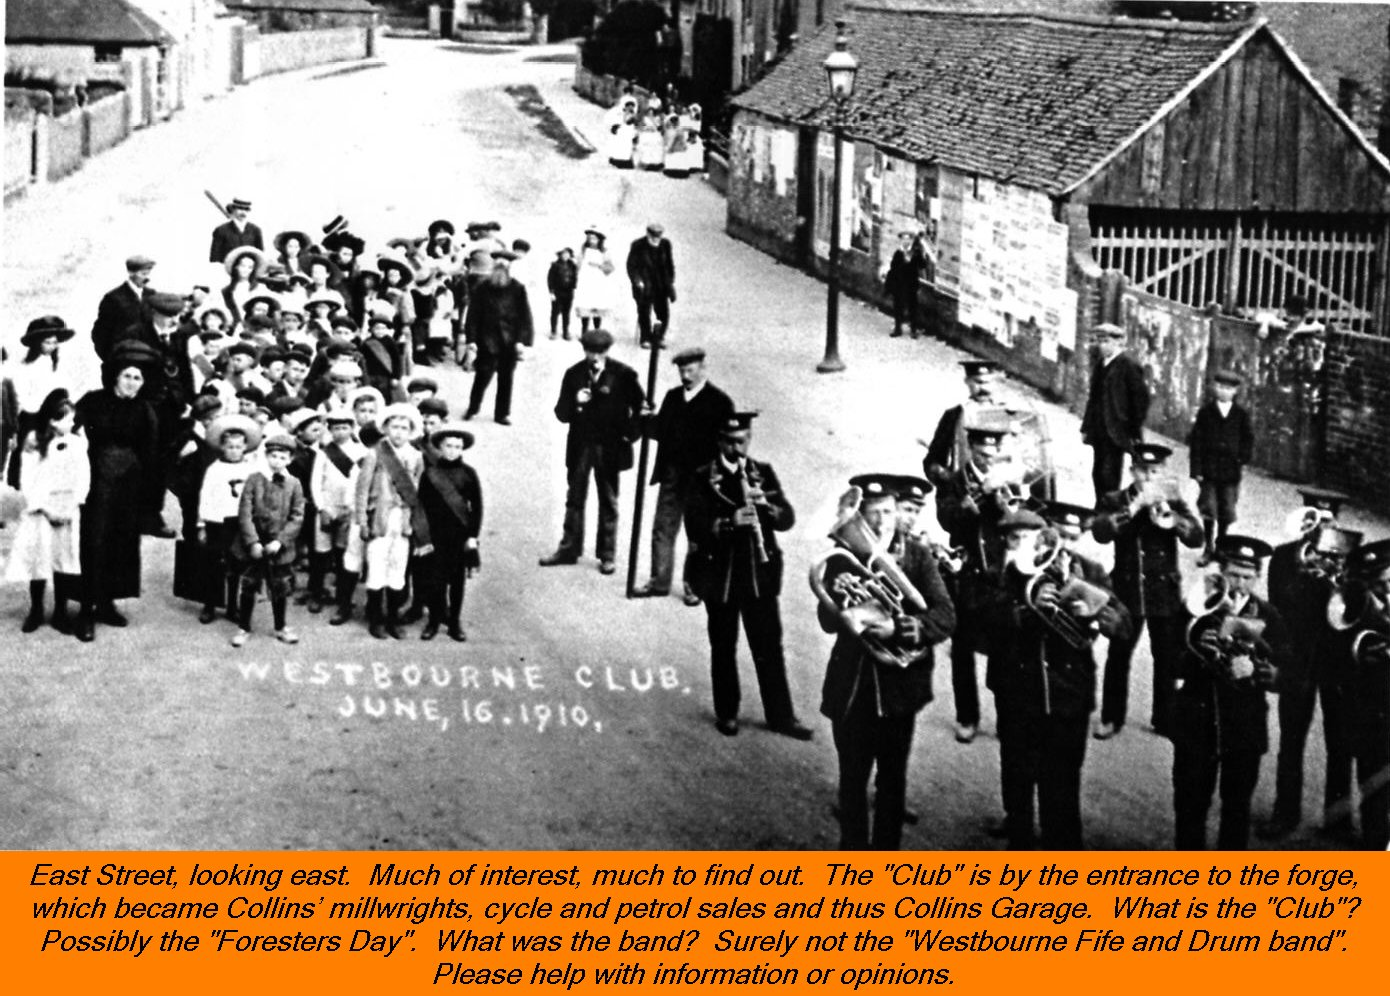 WESTBOURNE HISTORY PHOTO, EAST STREET, COLLINS, CLUB, BAND, FORESTERS